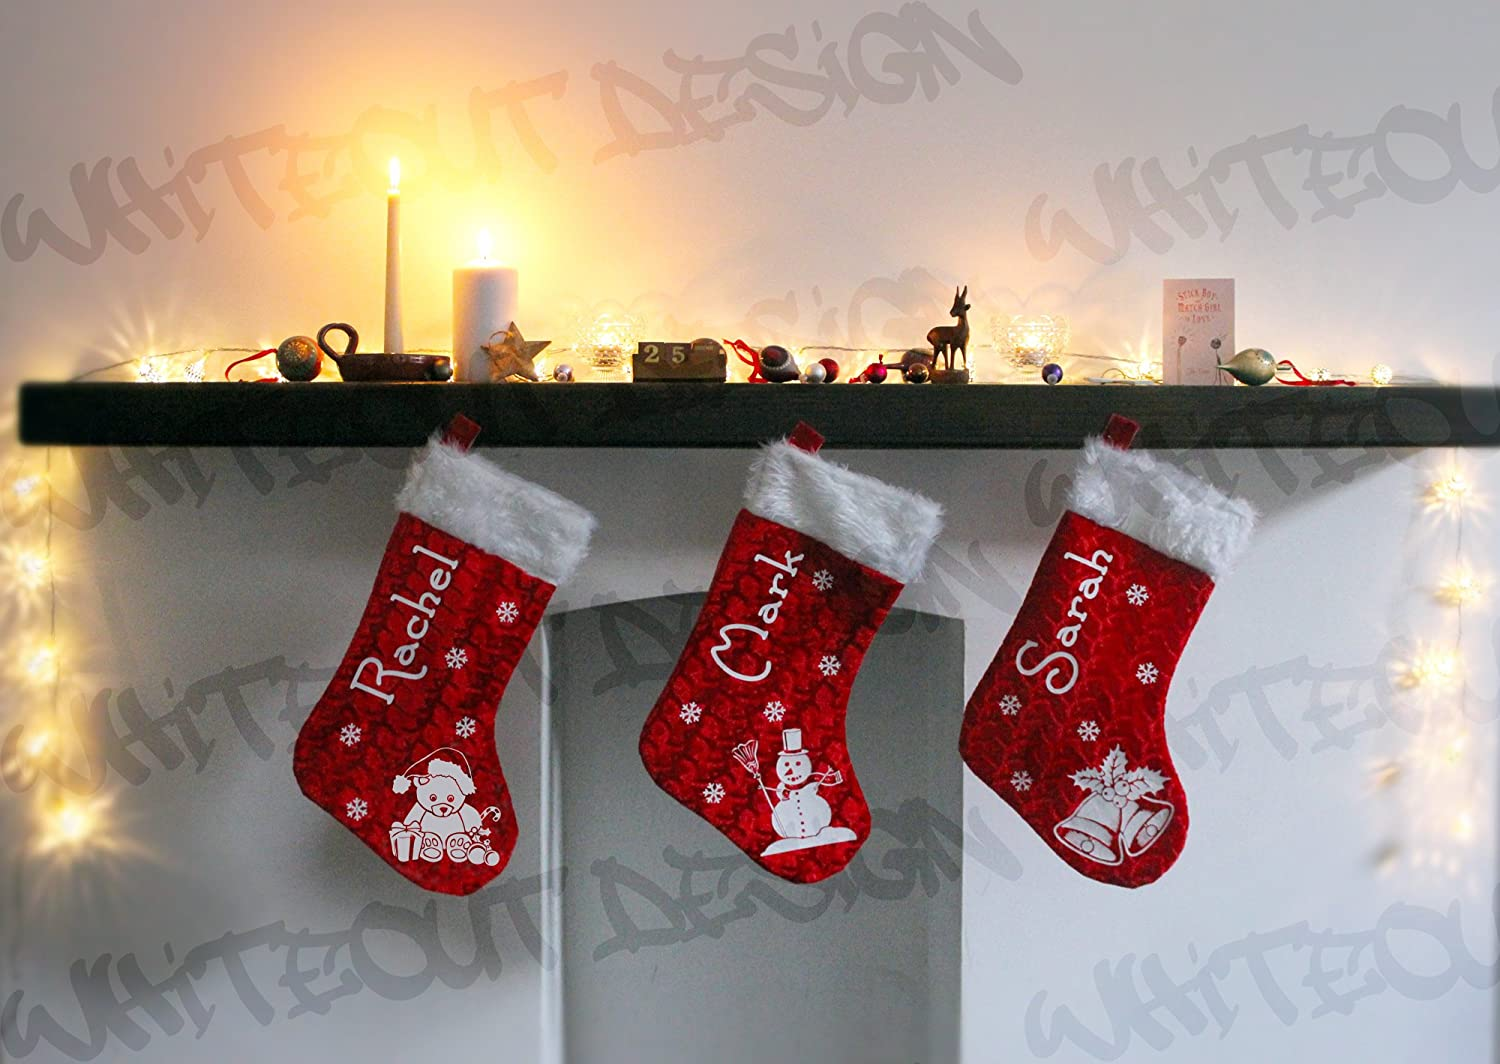 christmas stocking custom printed with your name and festive teddy bear design amazoncouk kitchen u0026 home